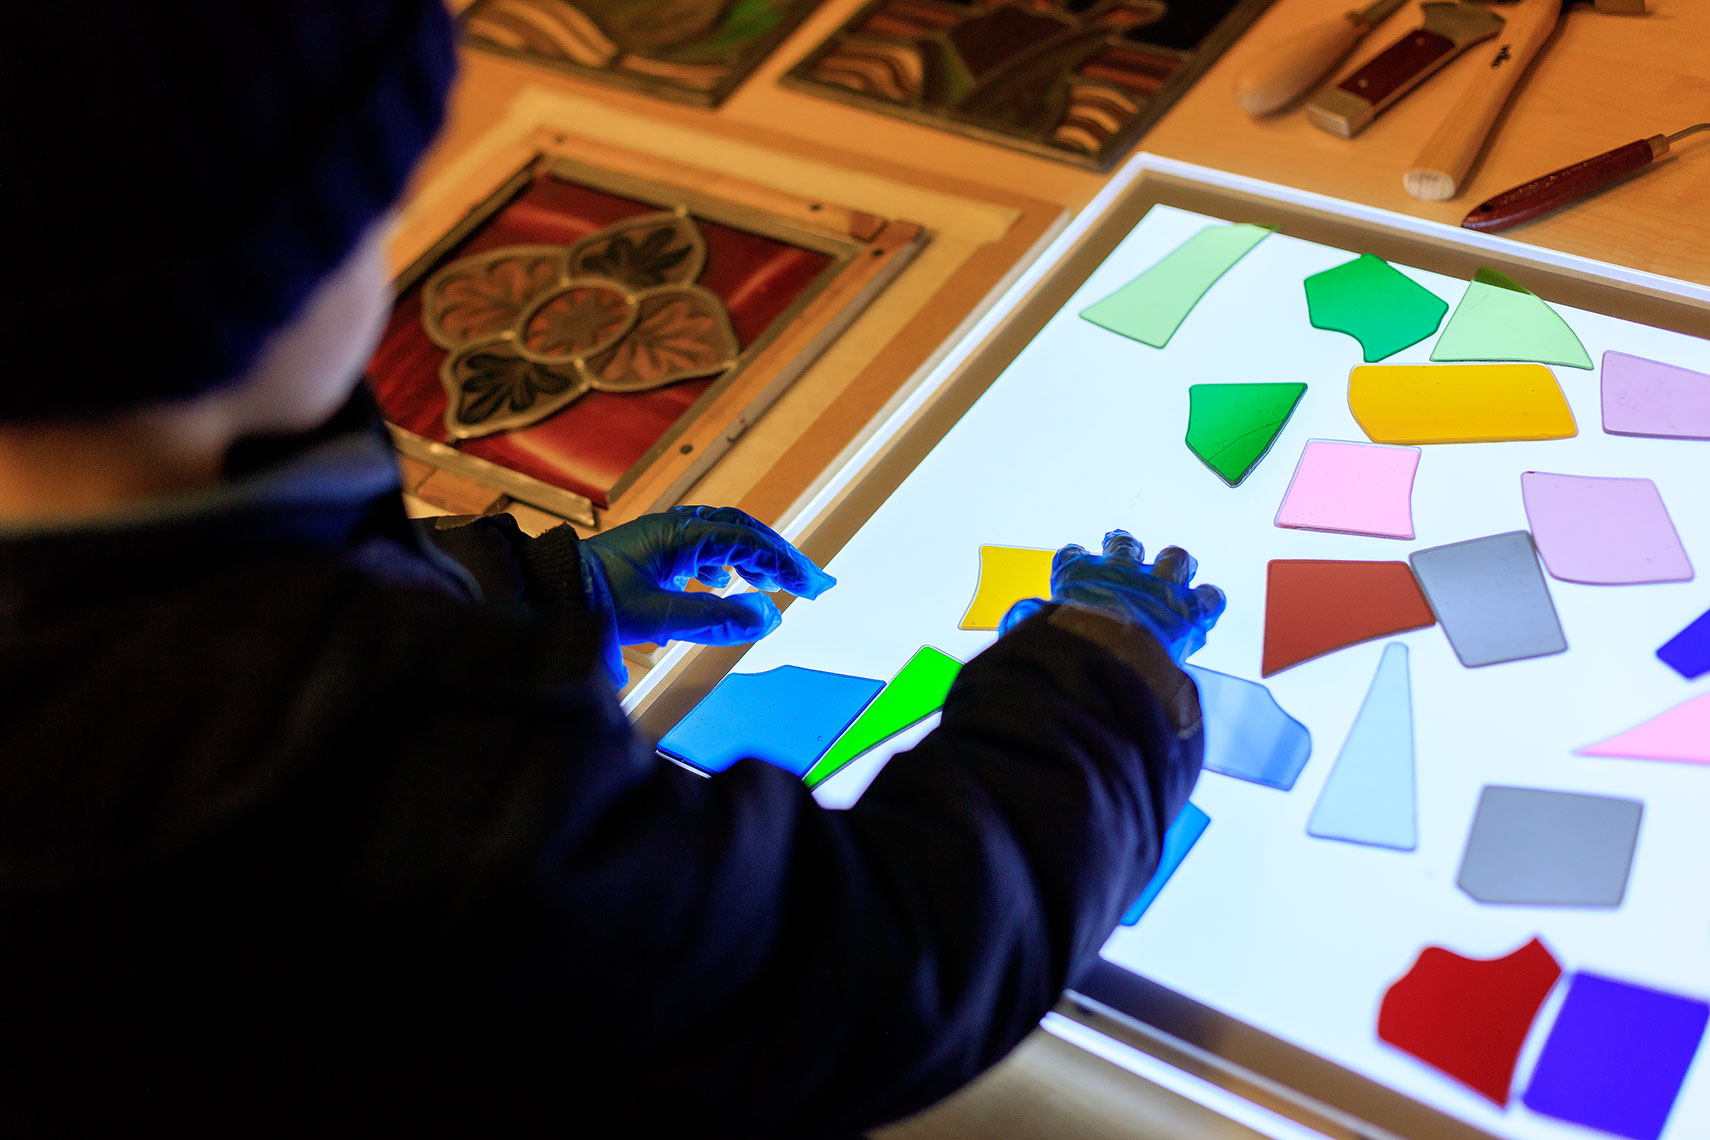 Young child with dark jacket and dark hat arranging multicoloured pieces of stained glass